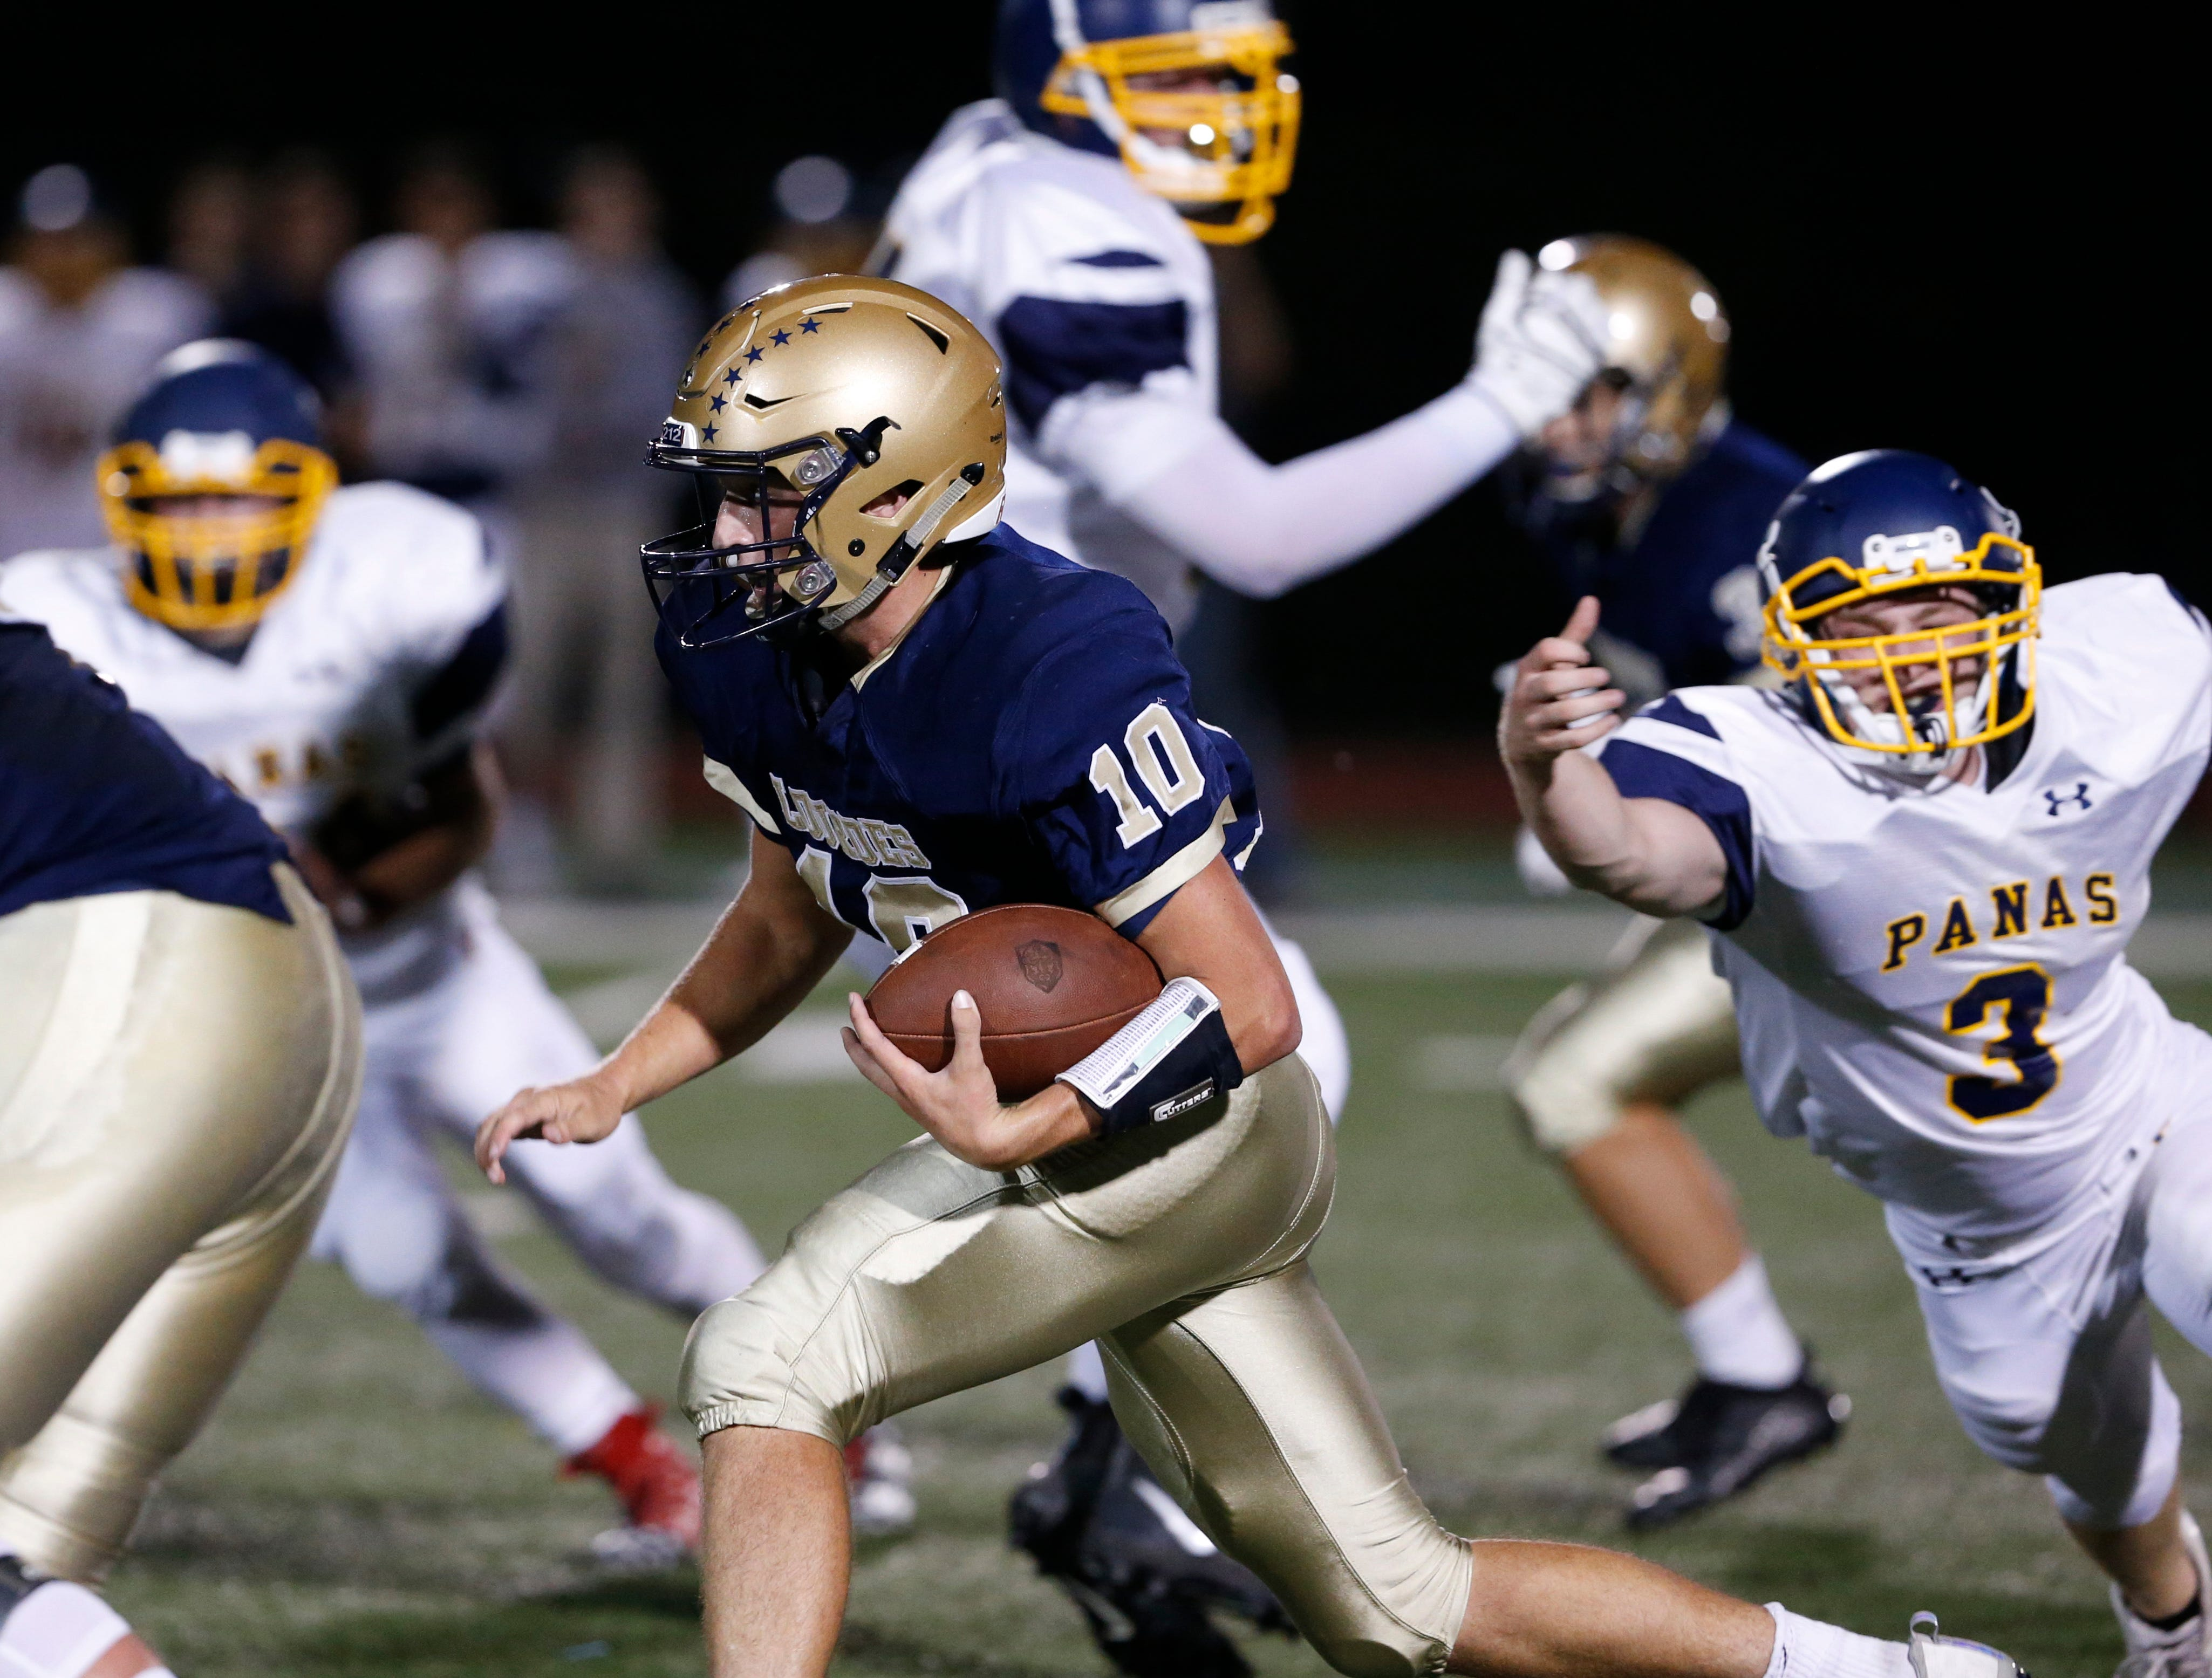 Lourdes' Max Kras narrowly escapes the clutches of Panas' Jack O'Brien during Friday night's game at Lourdes on Sept. 21, 2018.